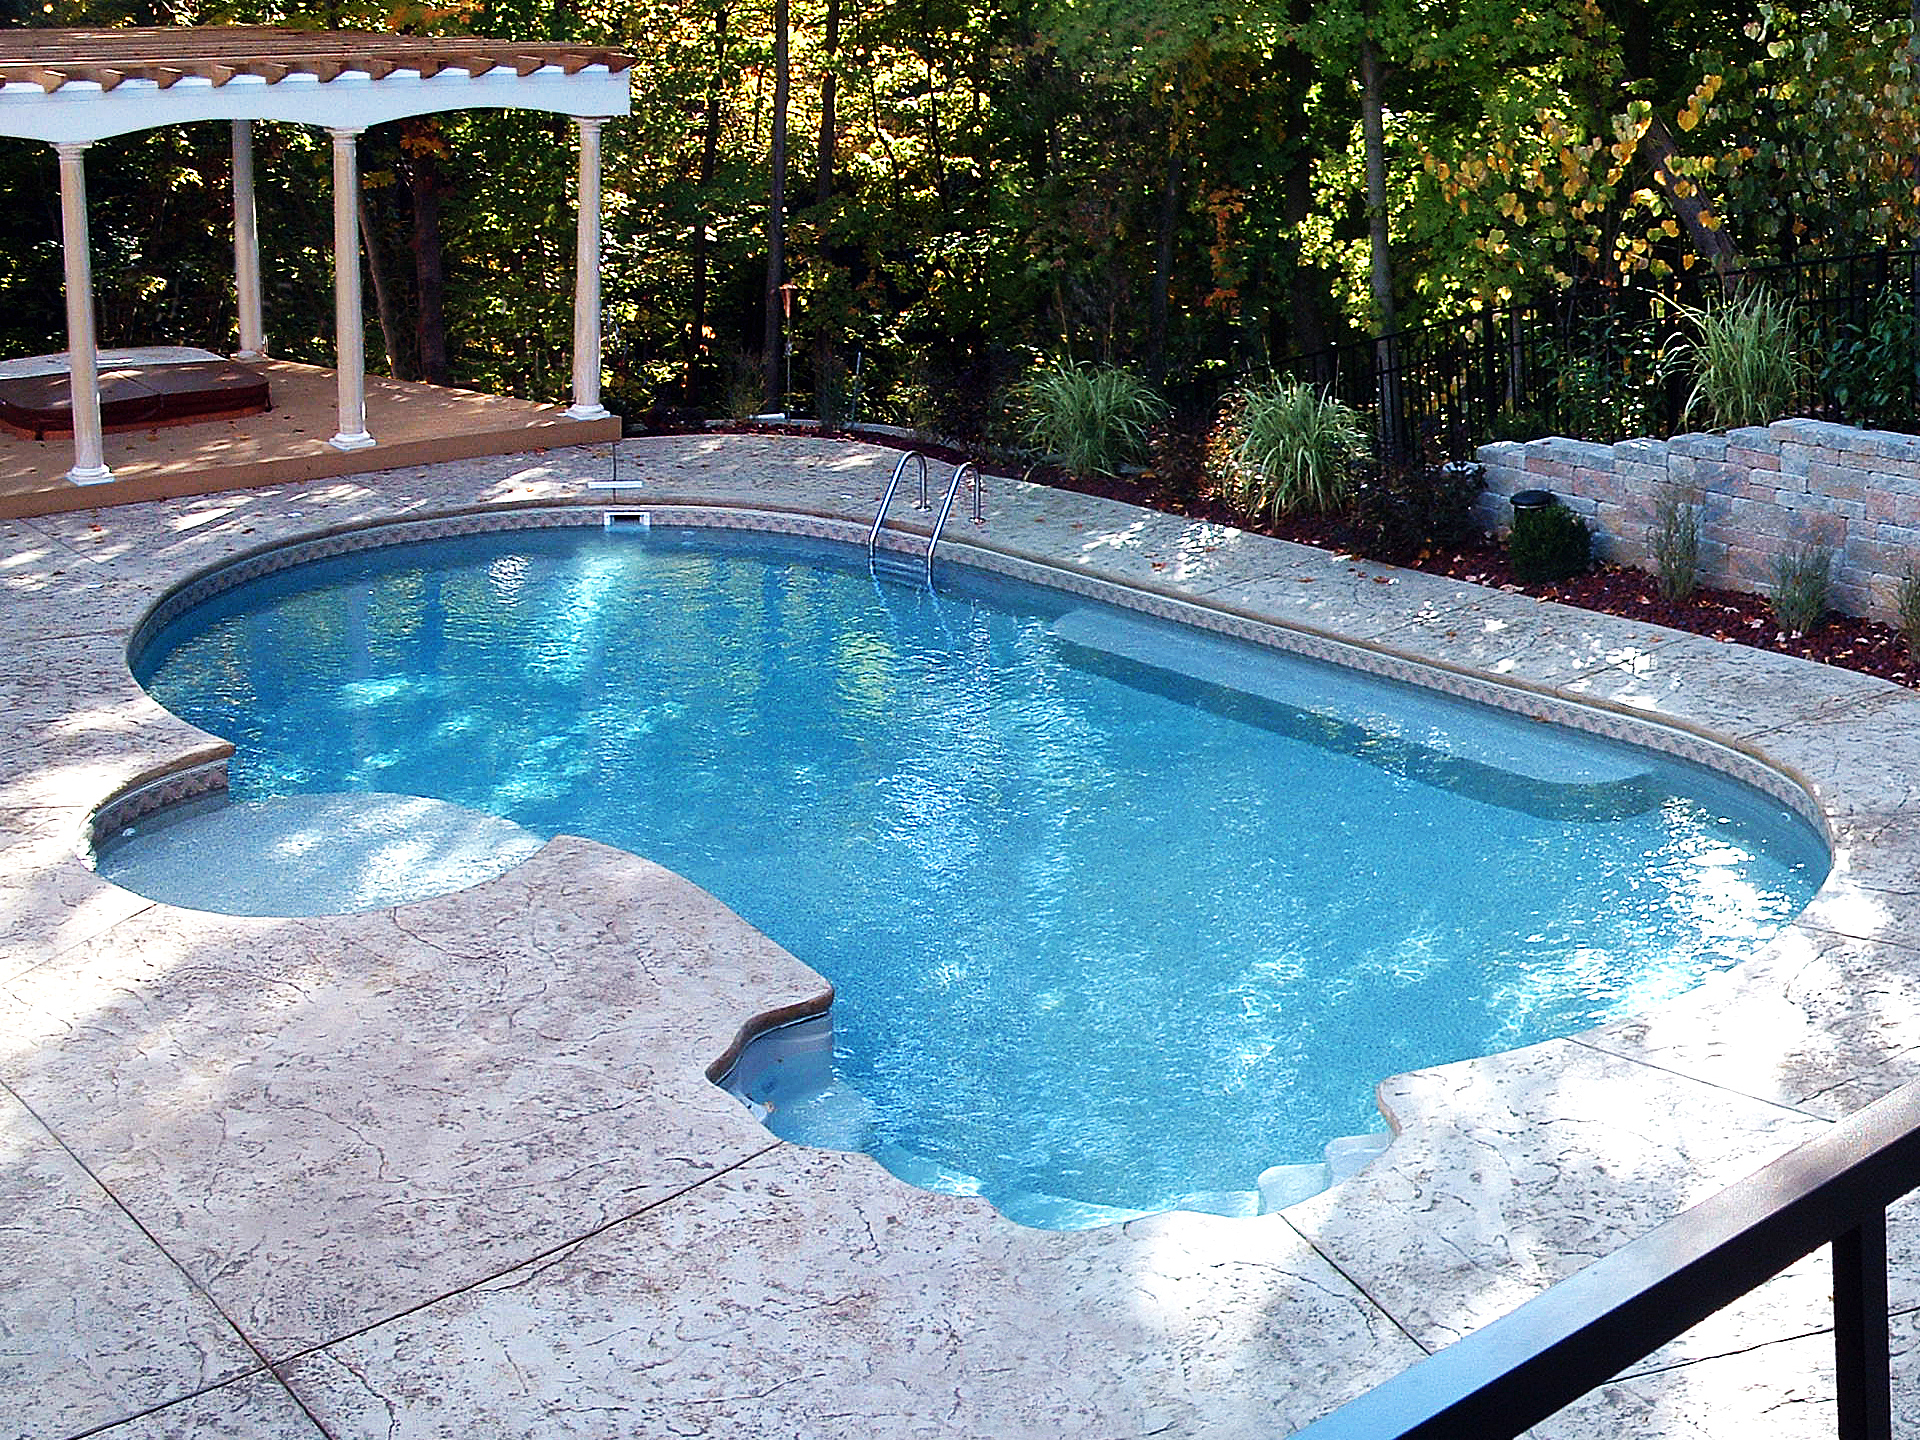 SunSpot Inground Pool Design - 111